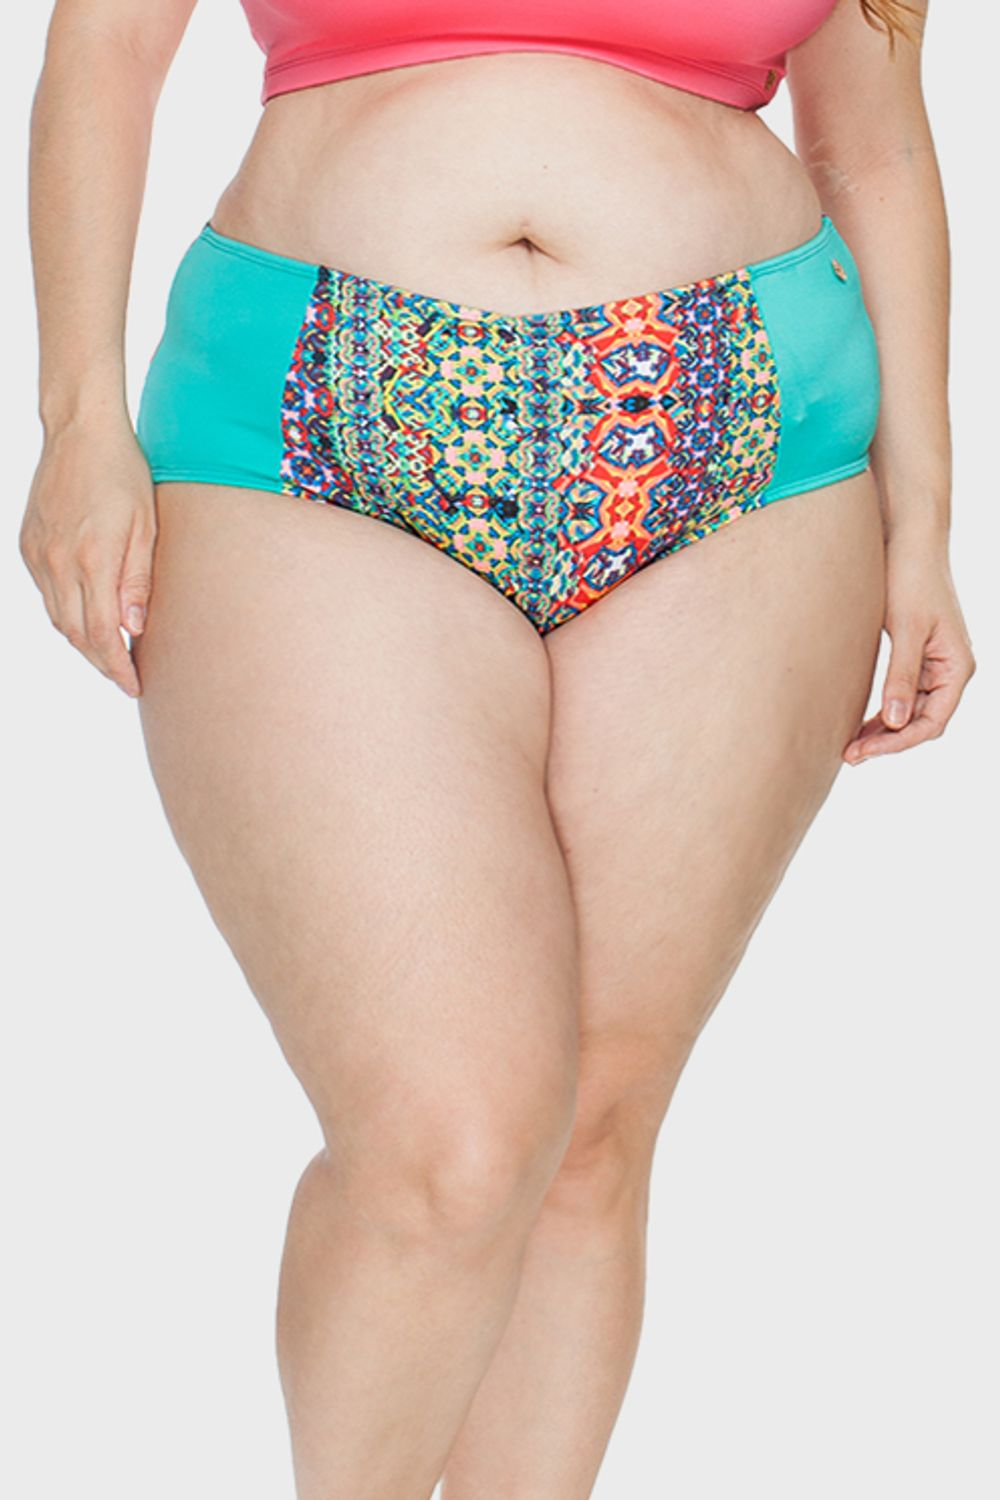 Microshort-Tribal-Plus-SIze_T1